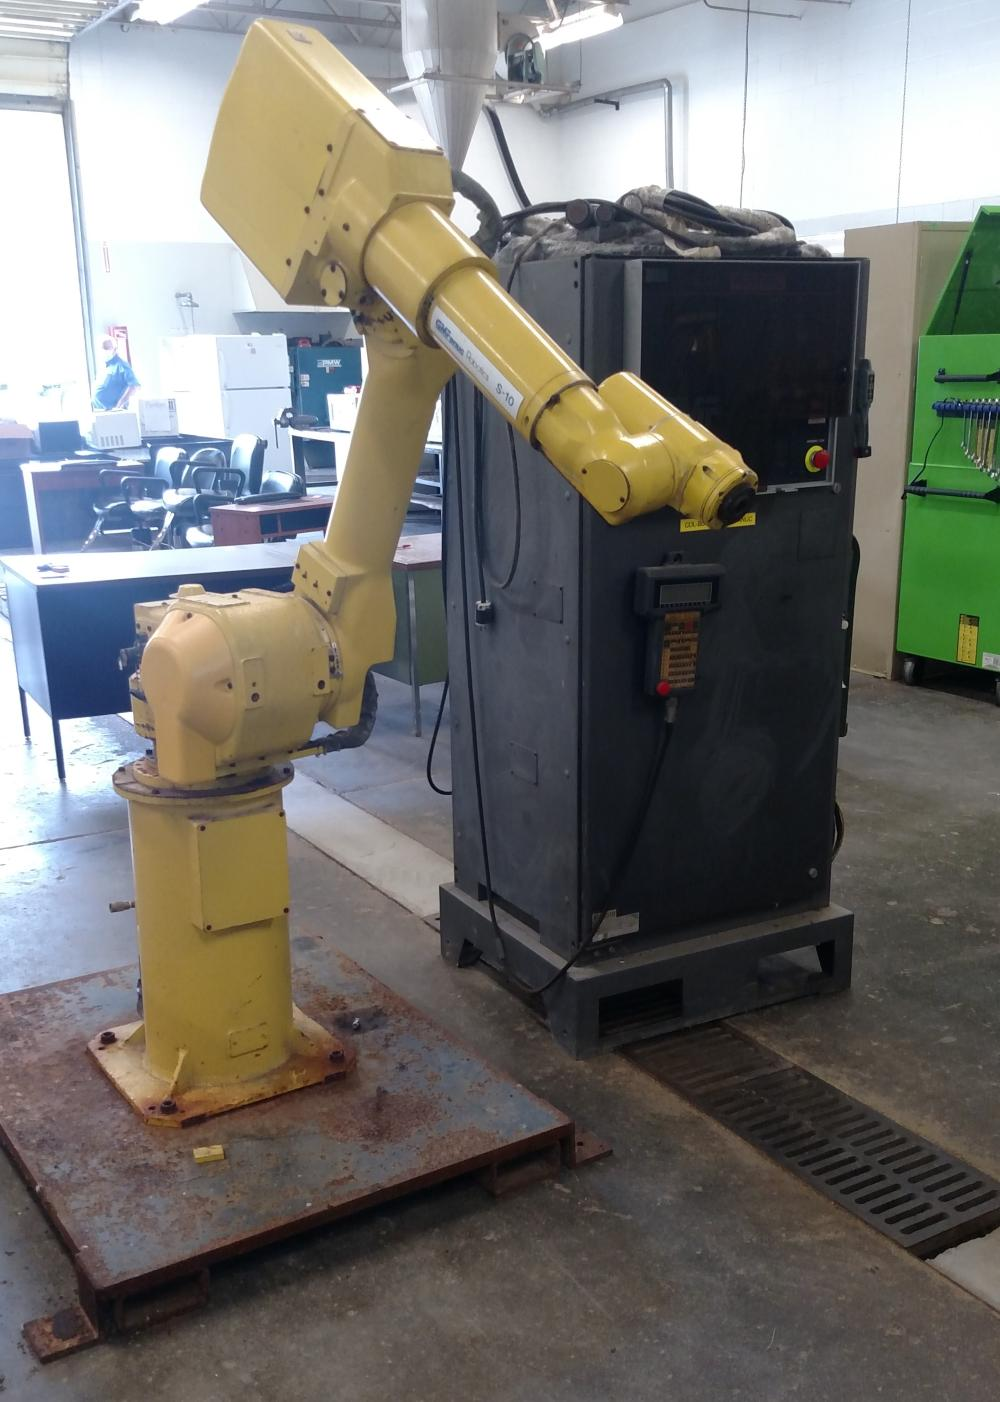 GMFanuc robotics karel s-10 robotic arm with control panel (operating condition unknown)